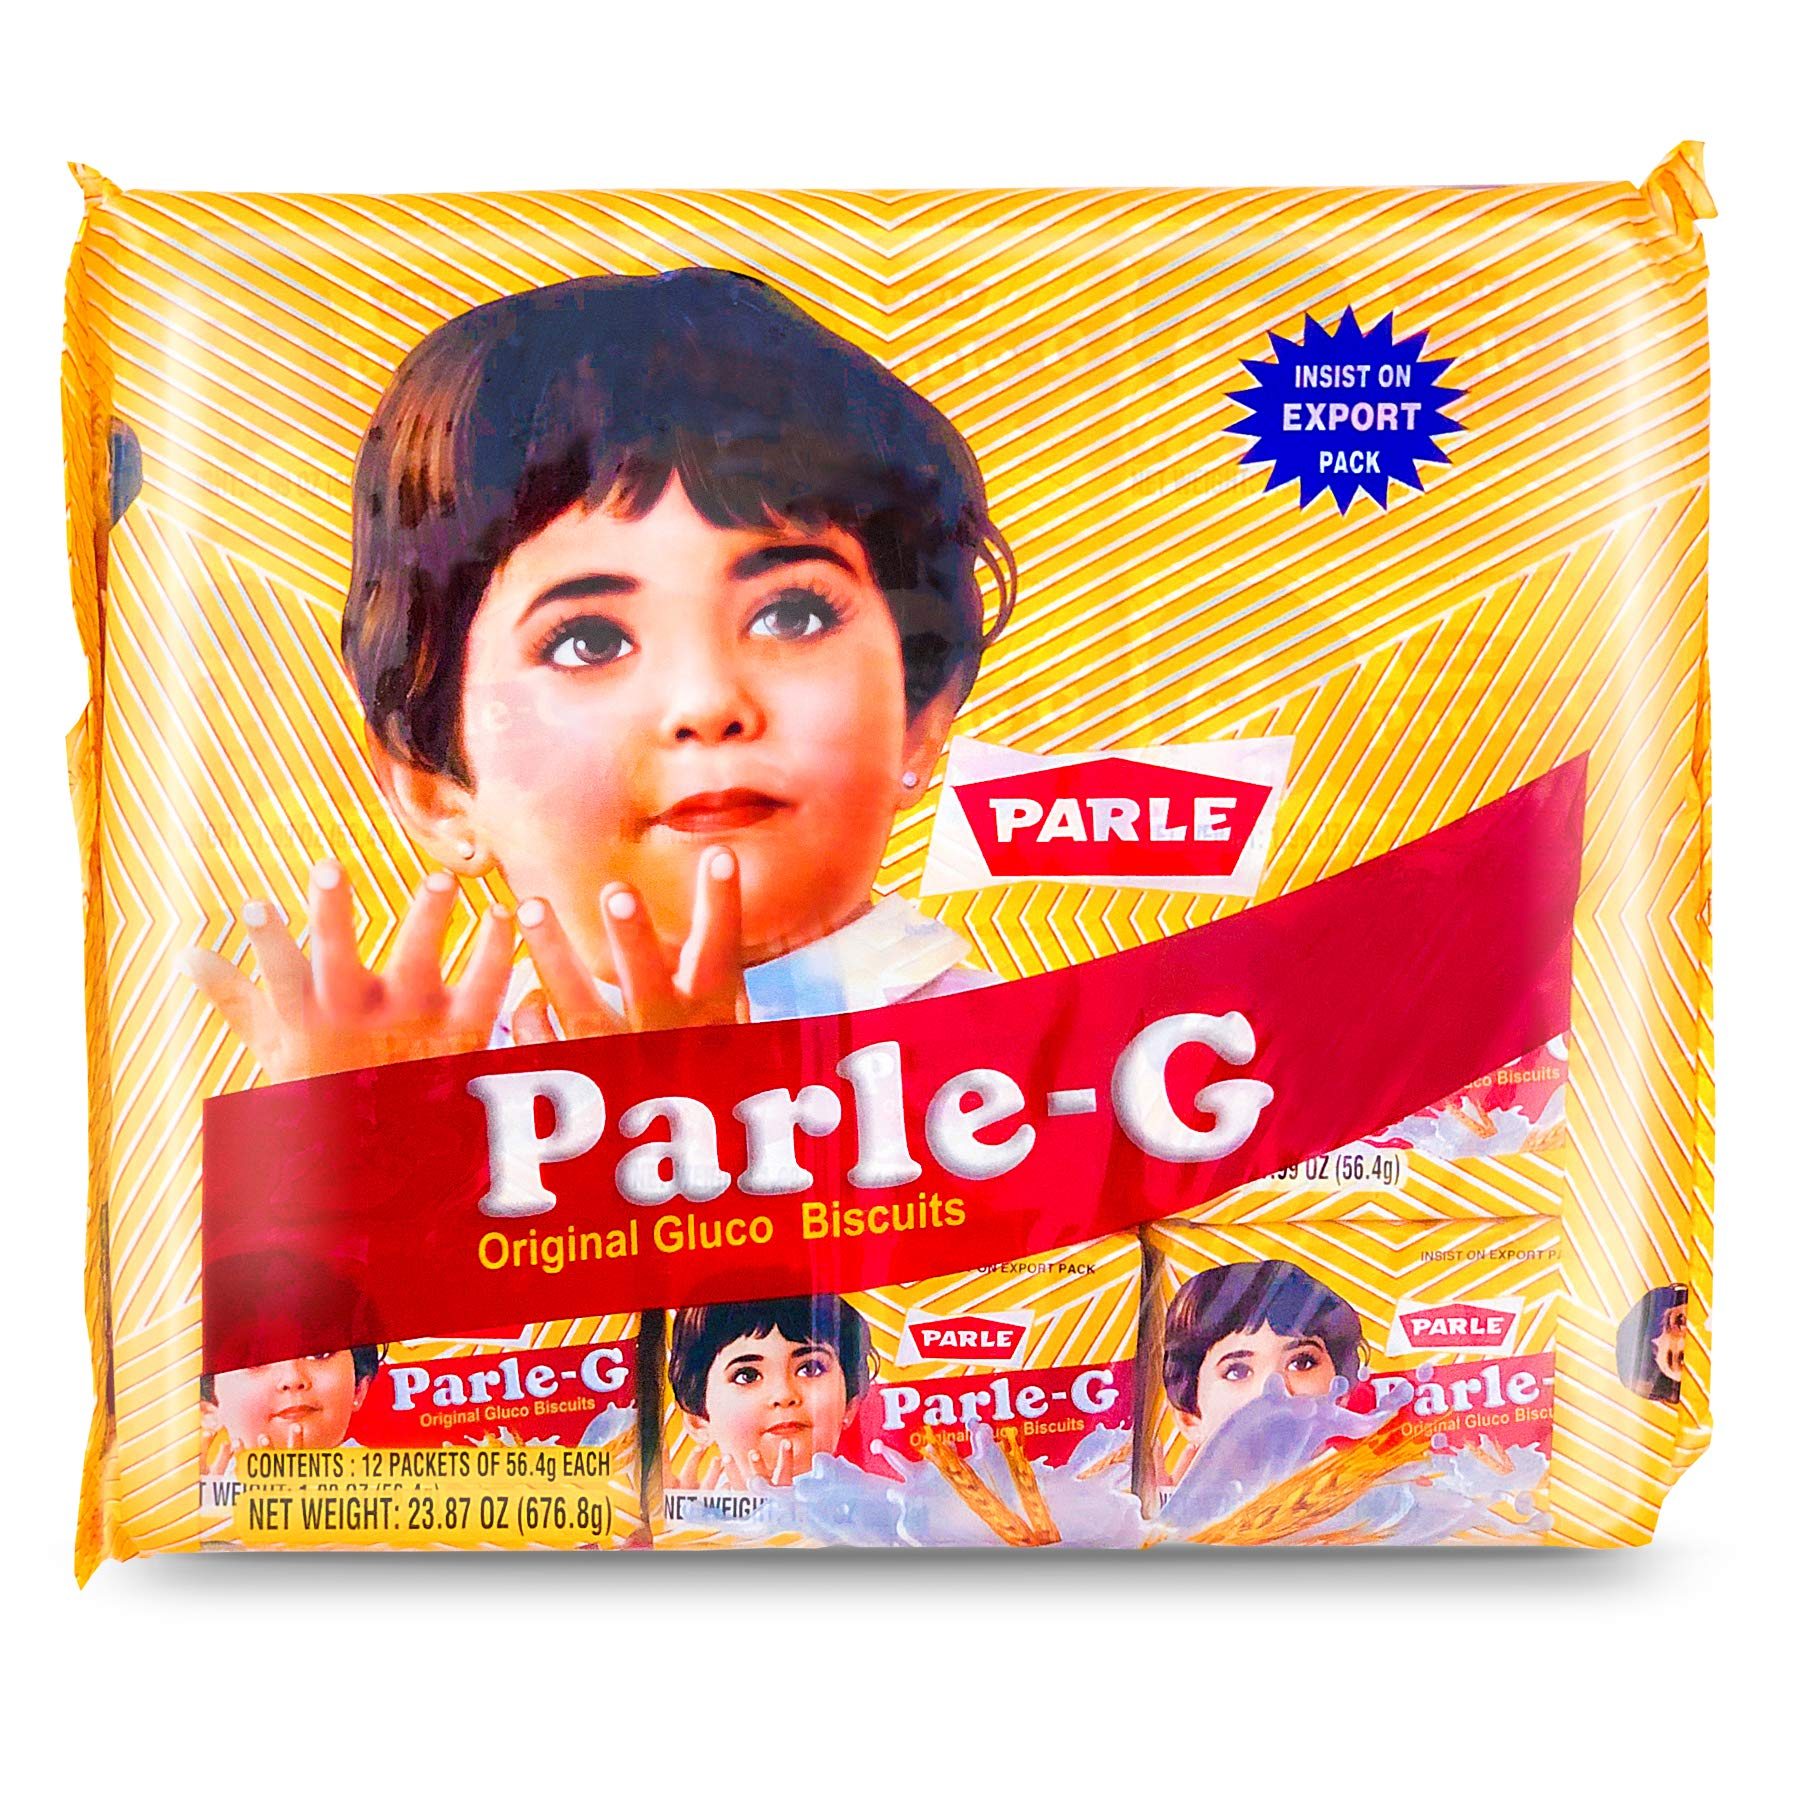 Parle G Original Gluco Biscuits, Product of India, Value Pack (12 Packets of 56.4g)